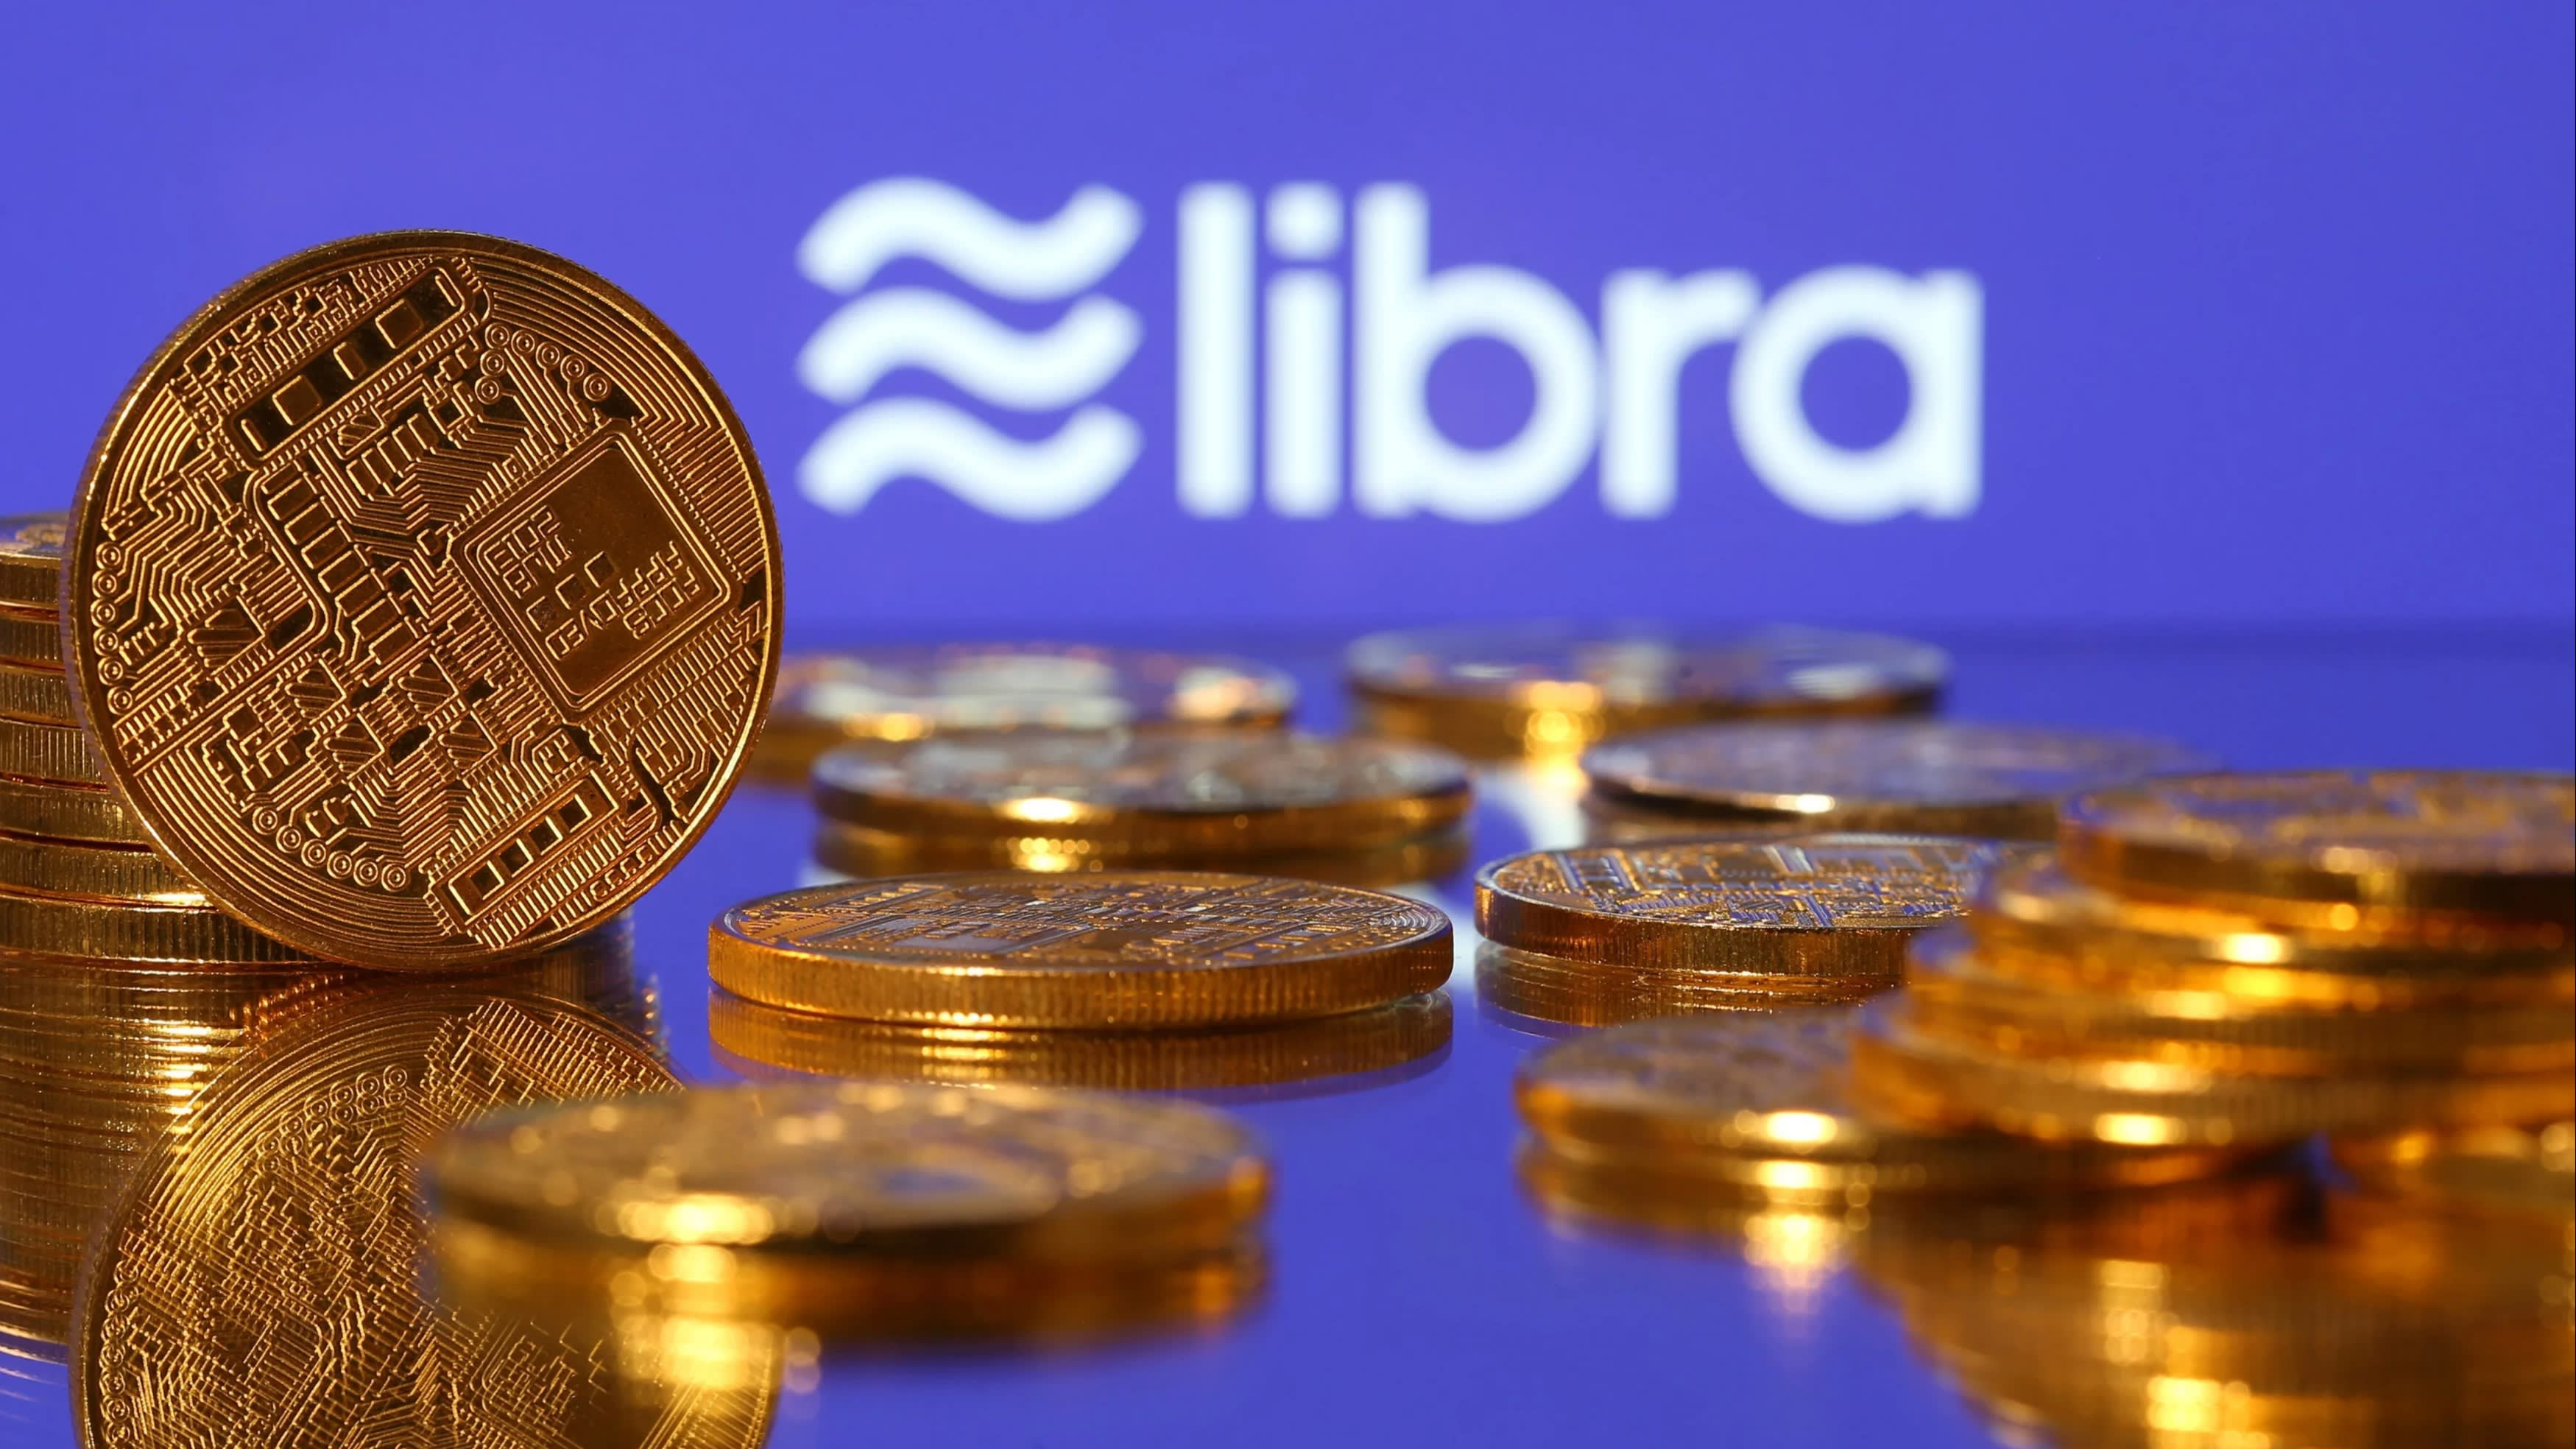 Libra - Facebook's Cryptocurrency